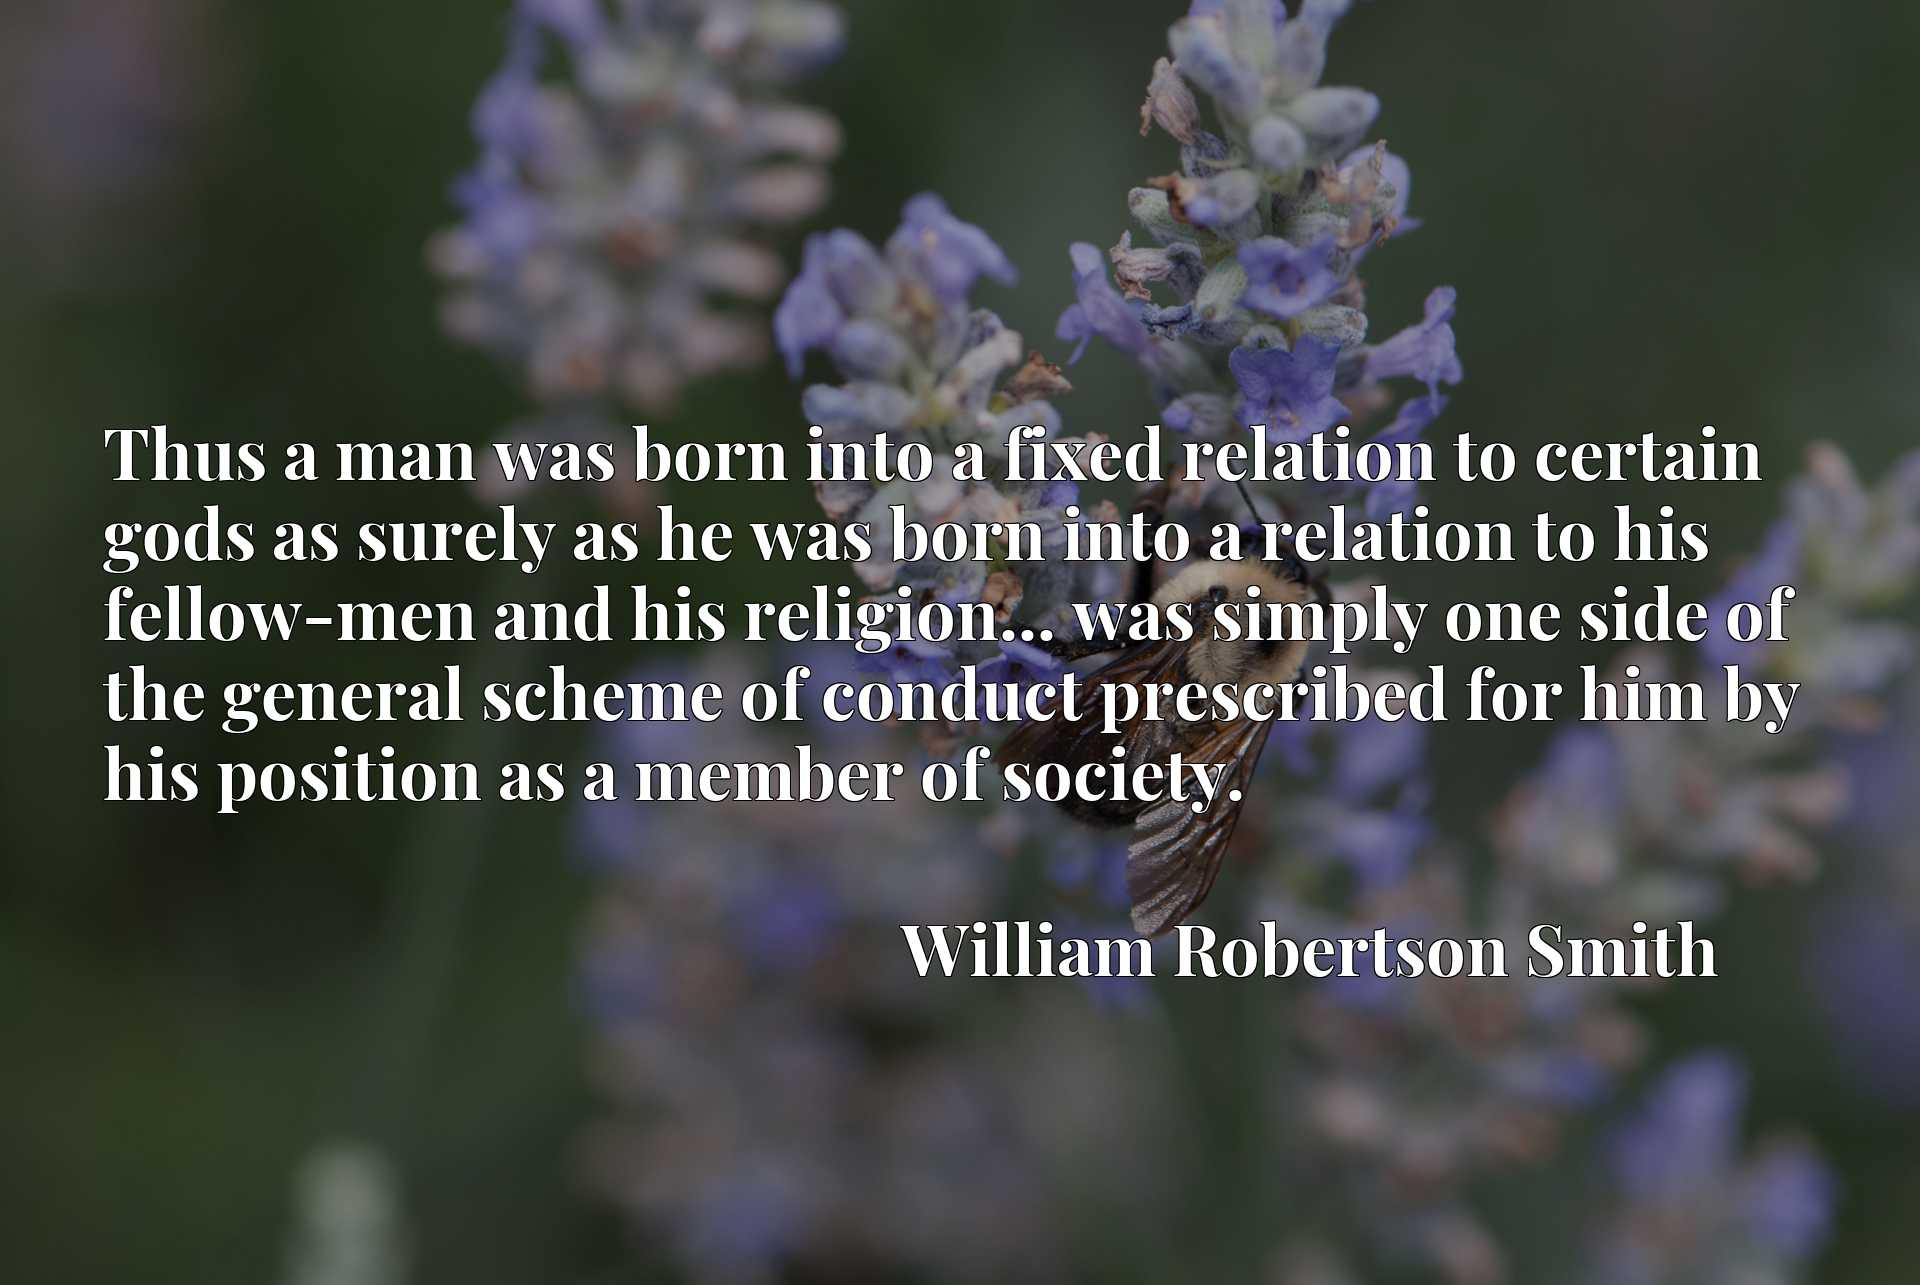 Thus a man was born into a fixed relation to certain gods as surely as he was born into a relation to his fellow-men and his religion... was simply one side of the general scheme of conduct prescribed for him by his position as a member of society.